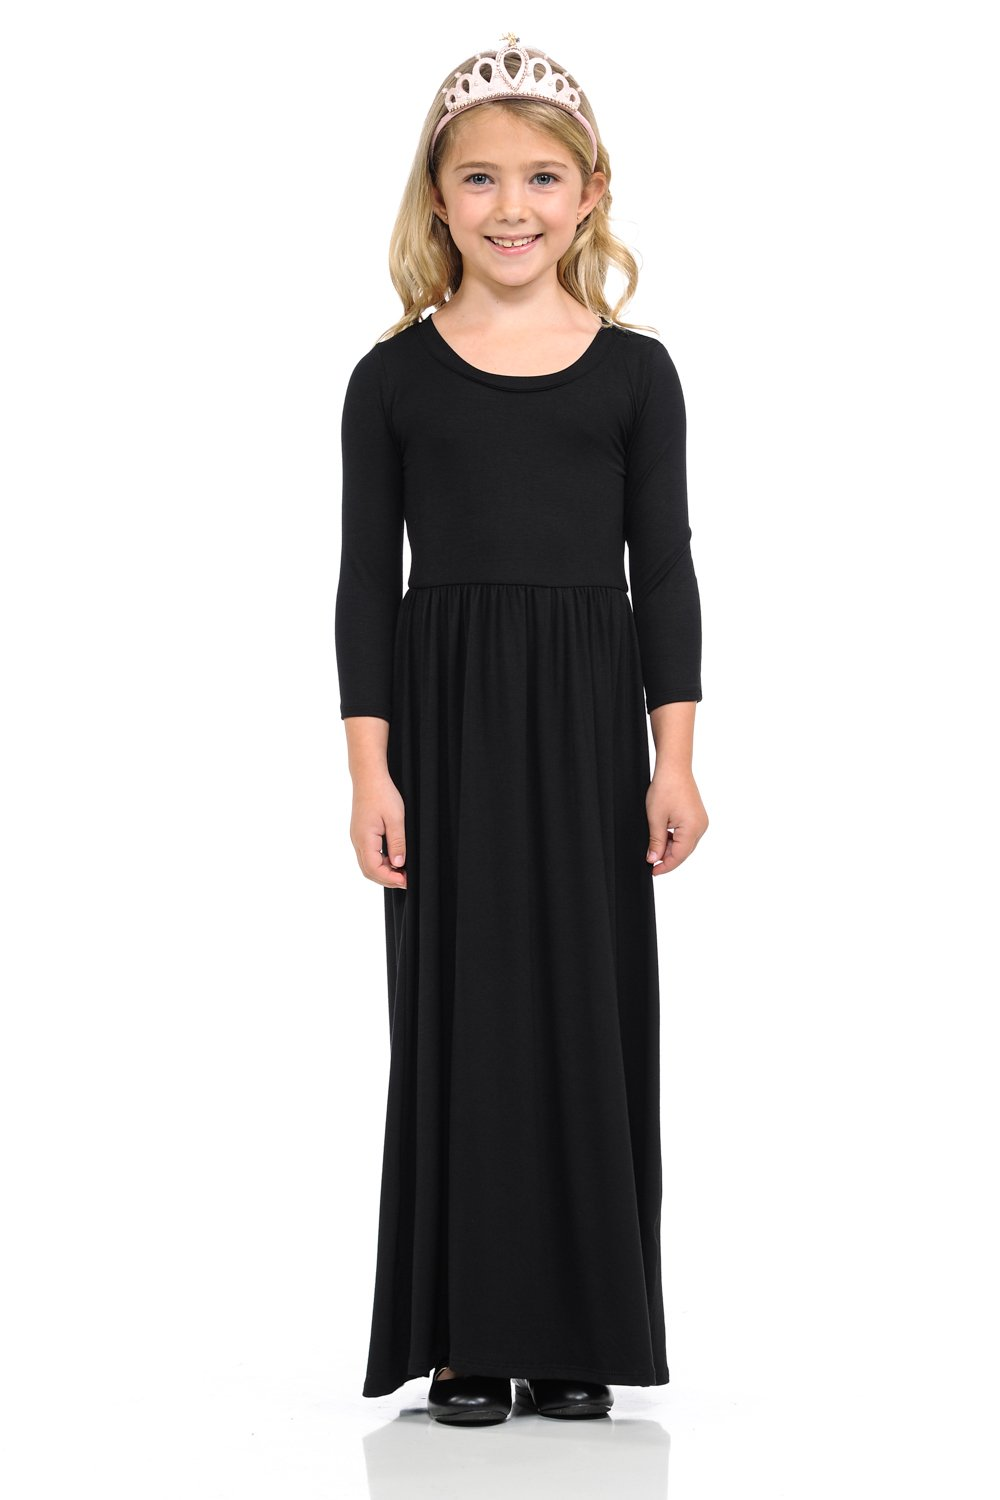 Pastel by Vivienne Honey Vanilla Girls' Fit and Flare Maxi Dress with Easy Removable Label Large 9-10 Years Black by Pastel by Vivienne